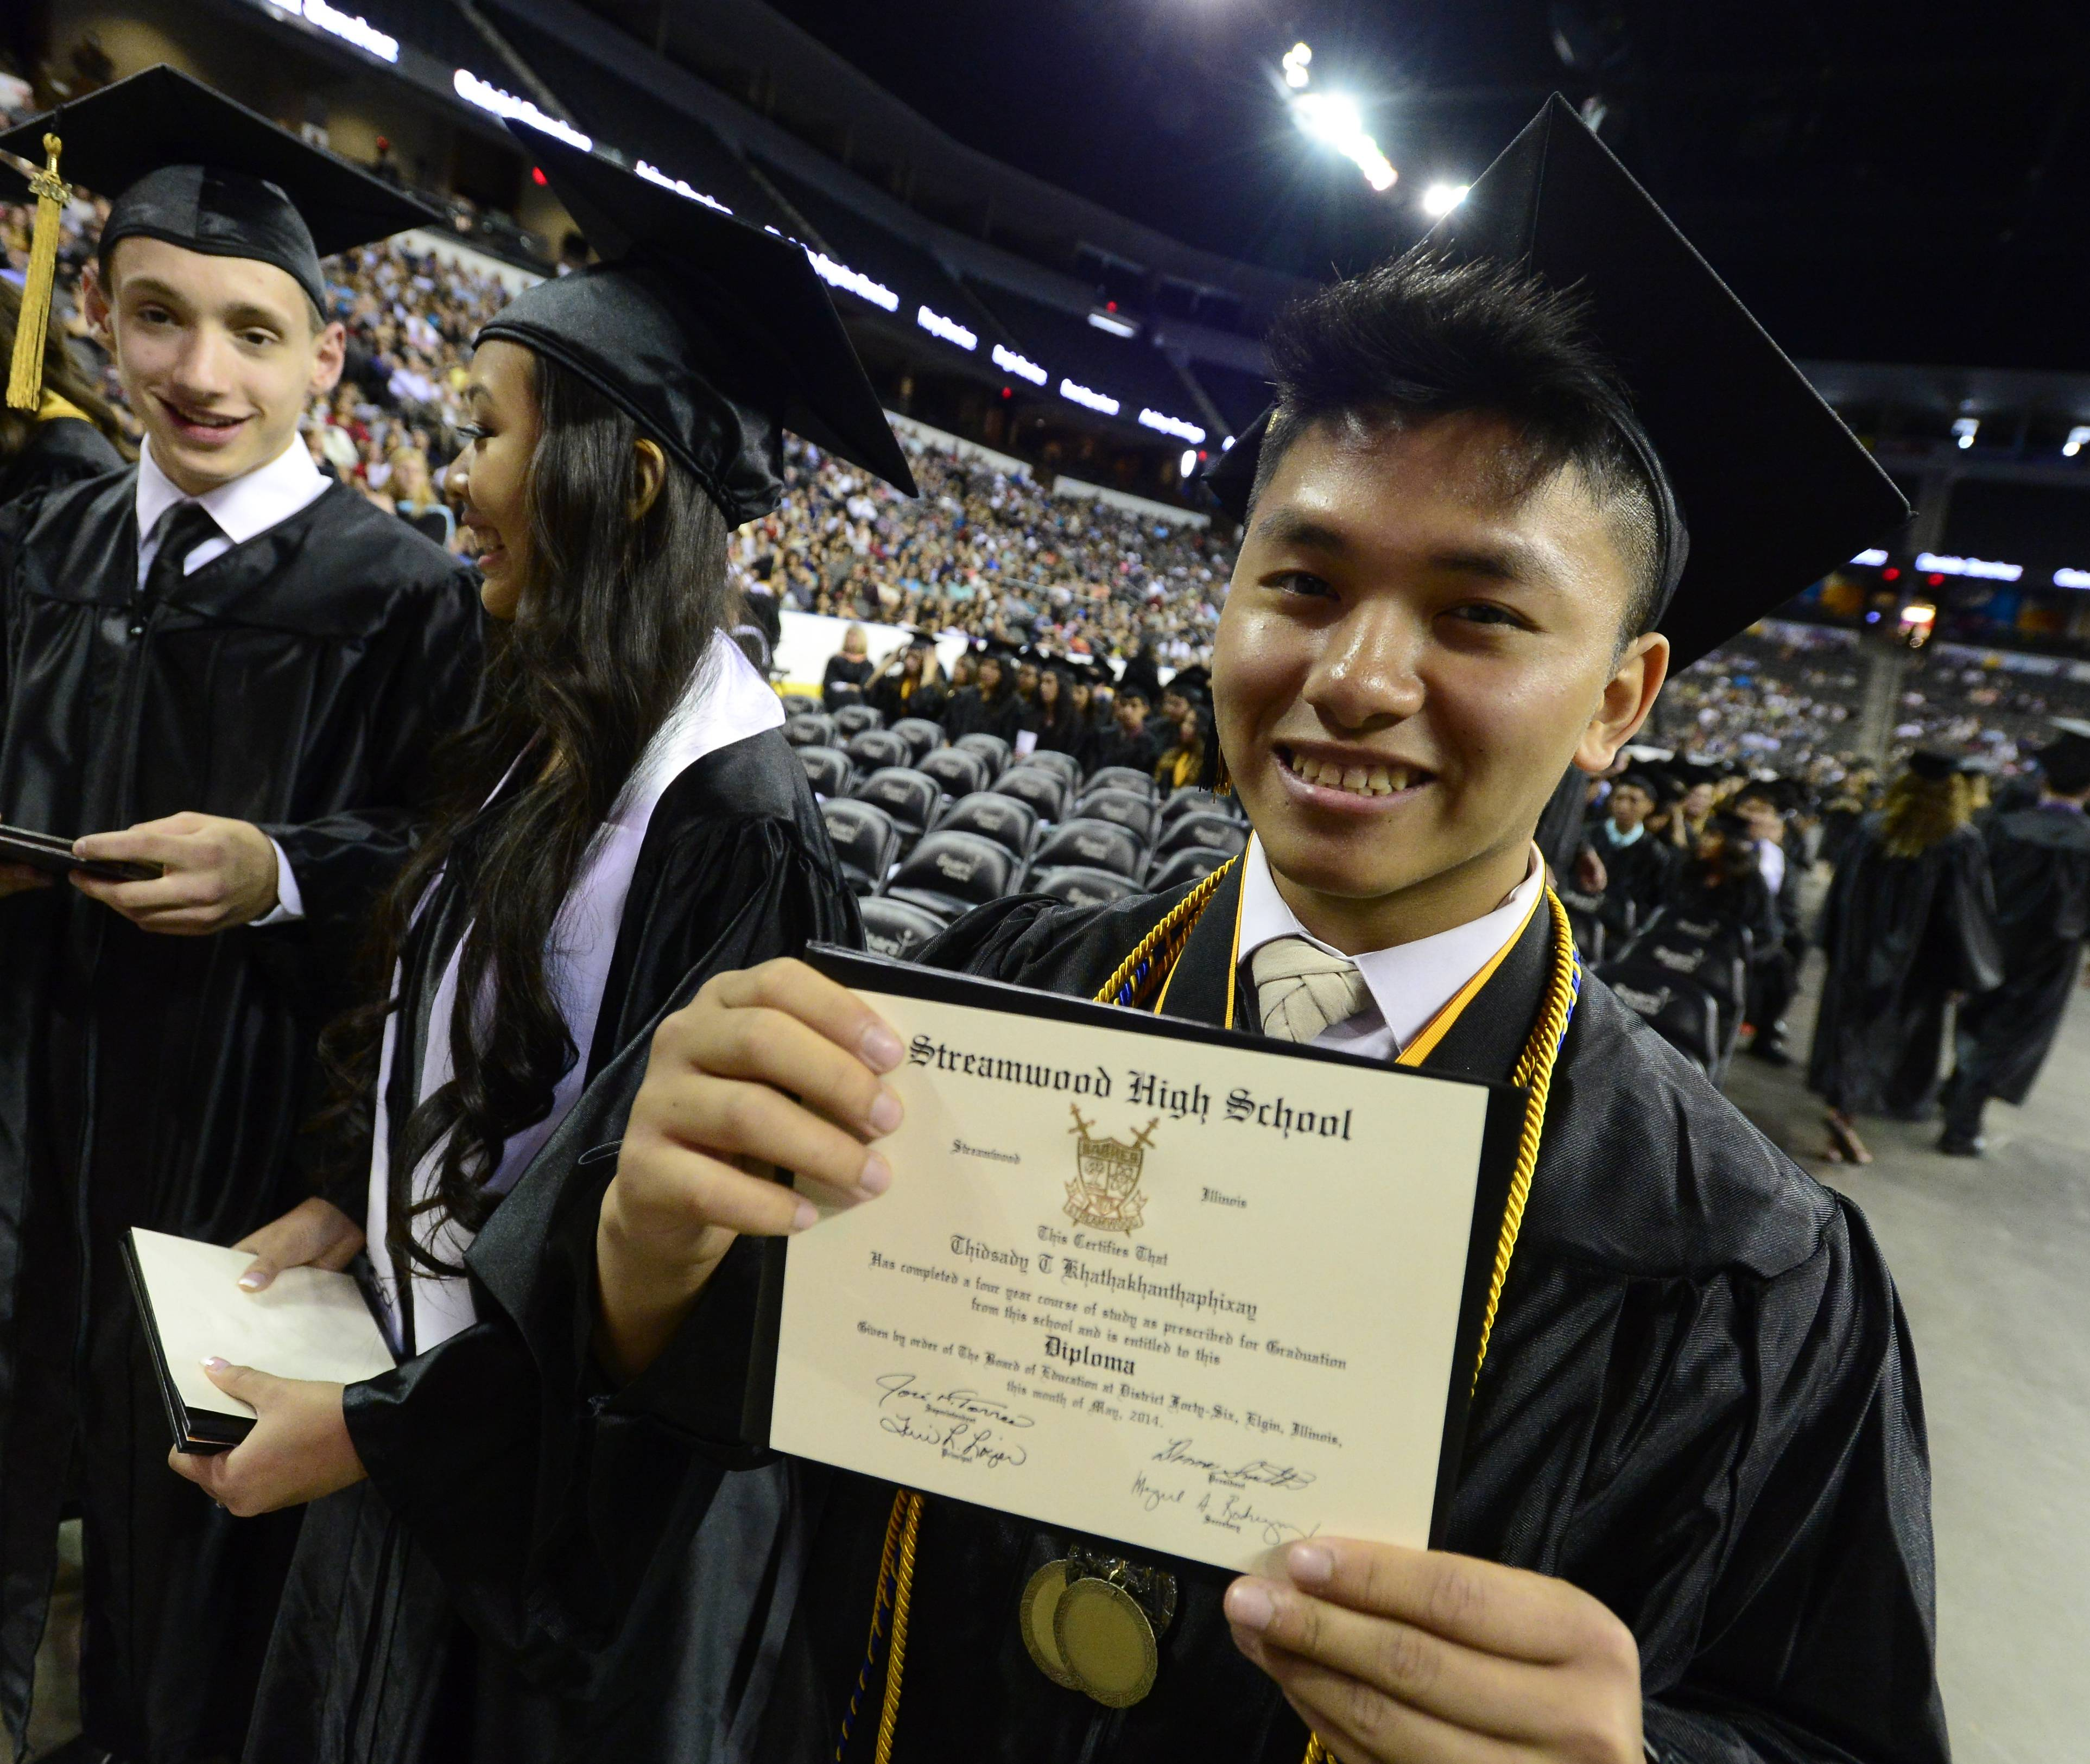 Images from the Streamwood High School graduation on Saturday, May 24th at the Sears Centre in Hoffman Estates.